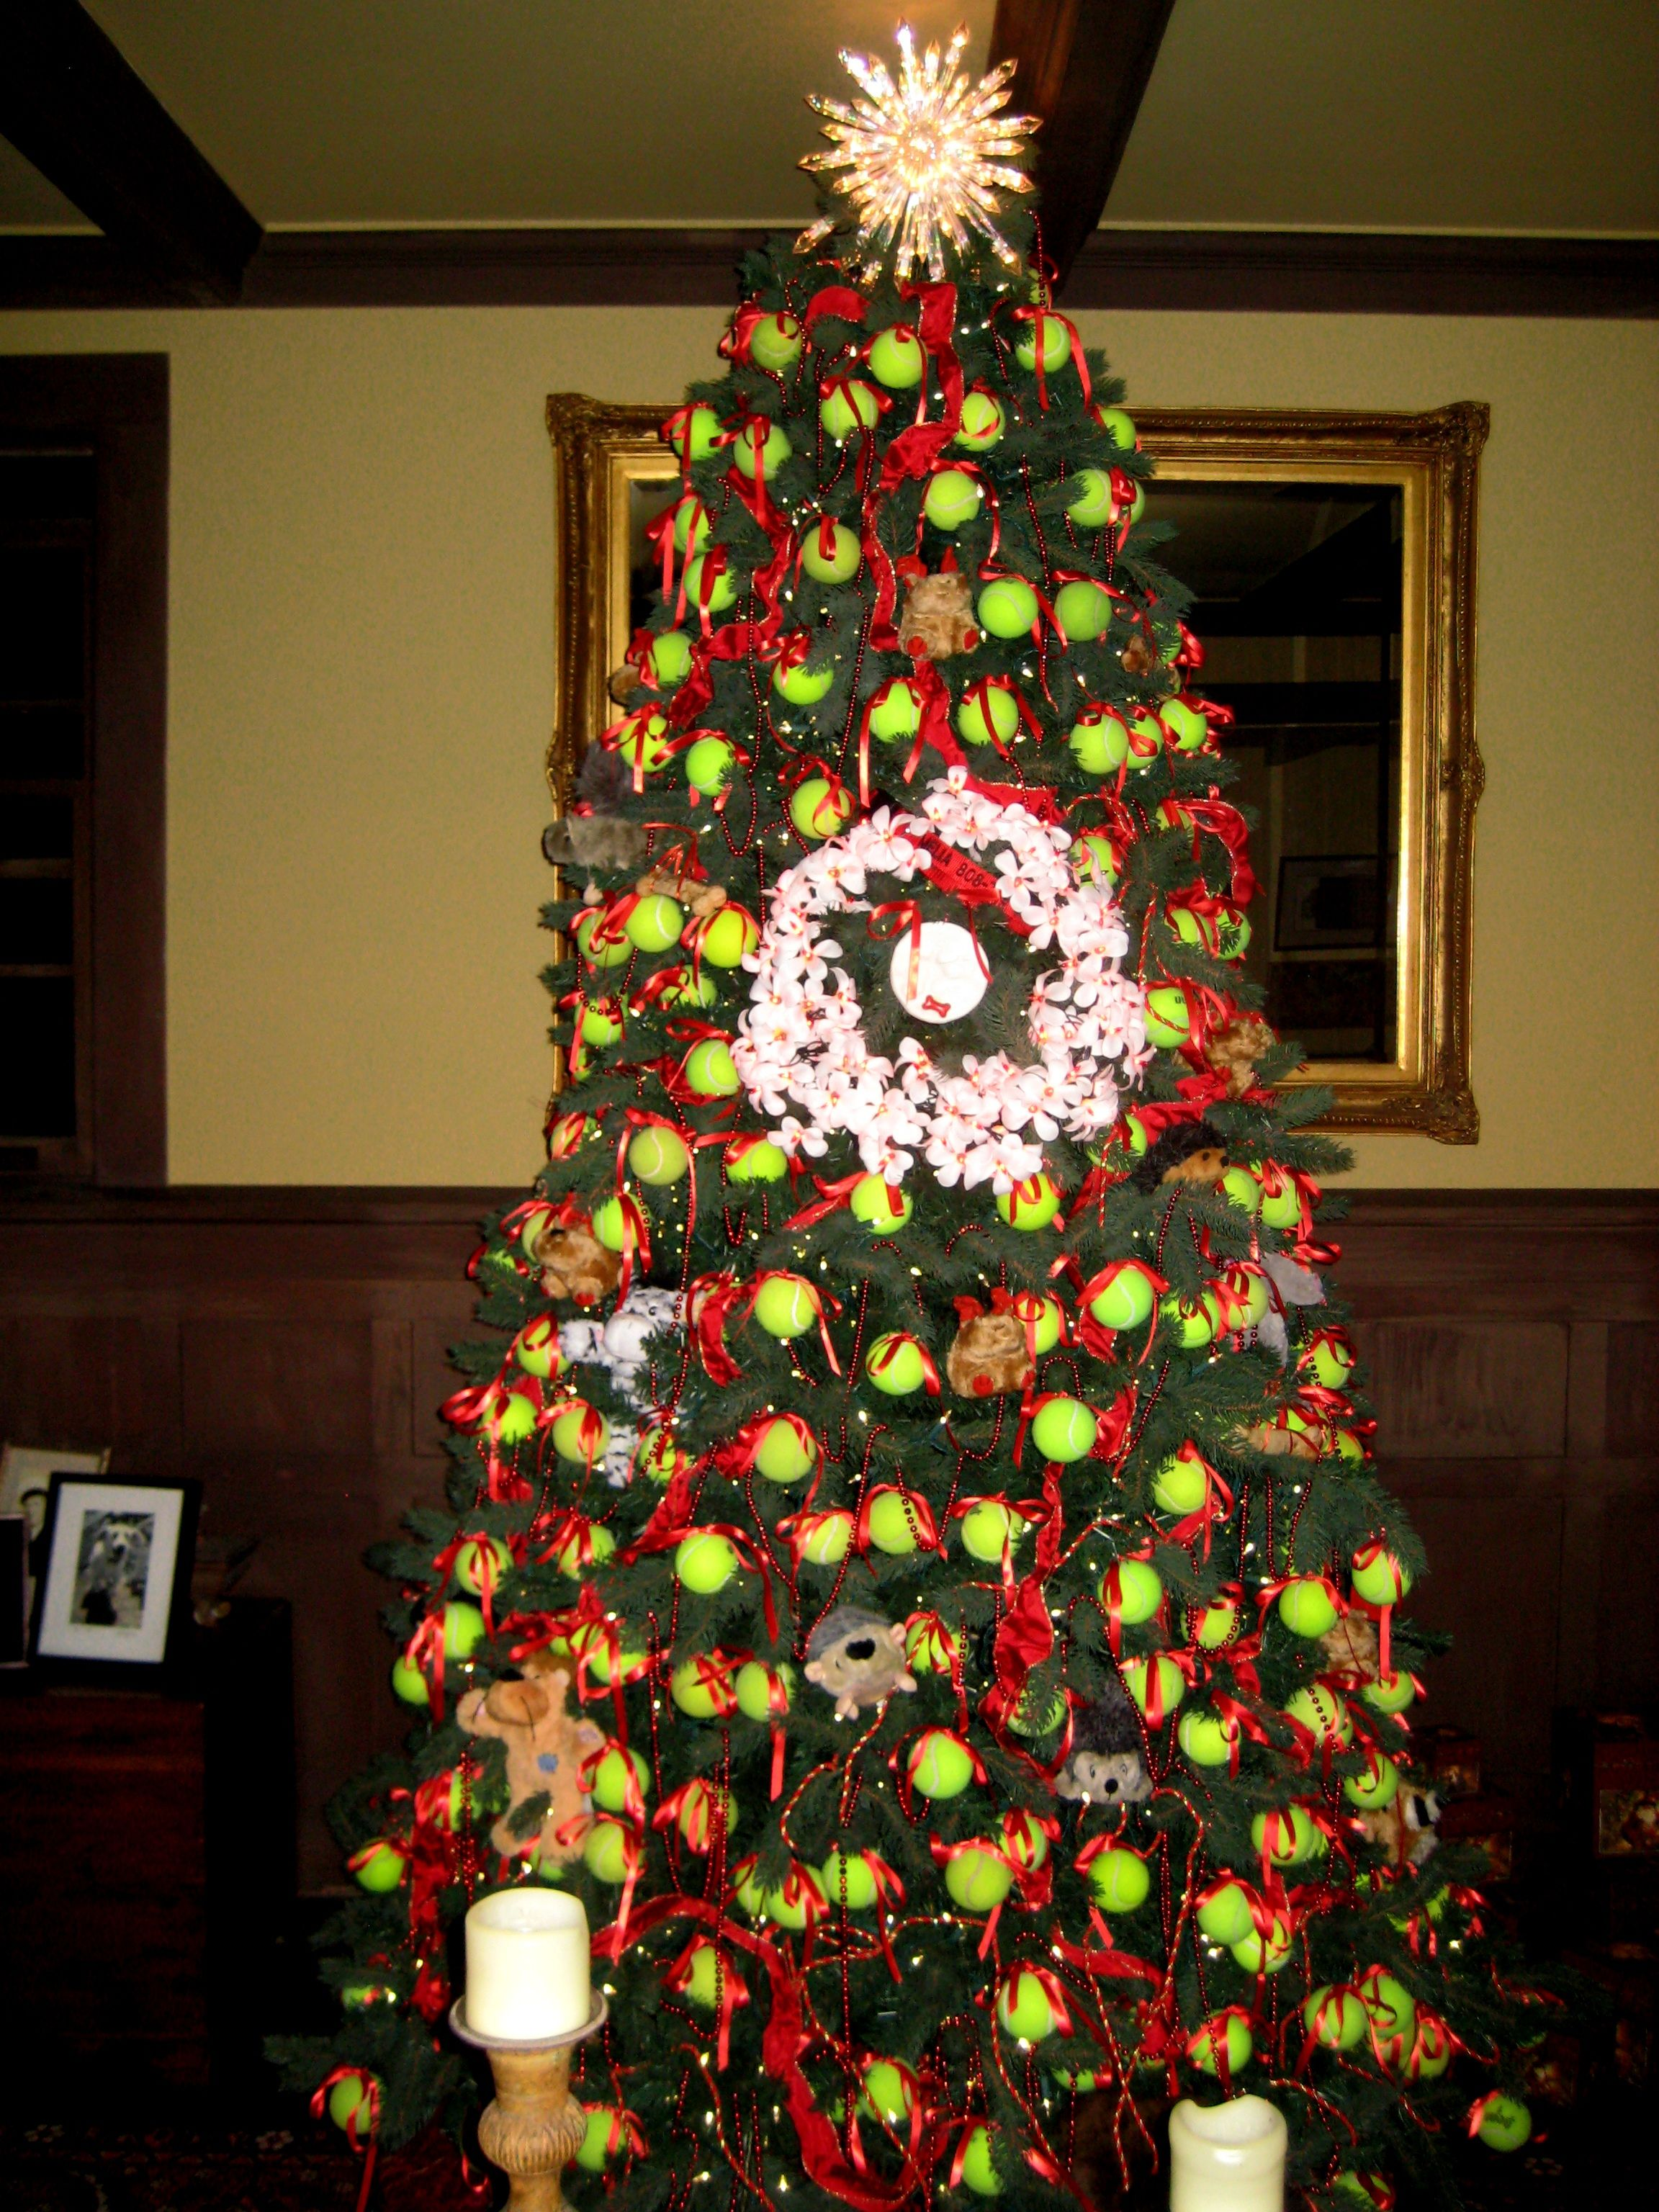 A Special Christmas Tree Covered With 400 Tennis Balls In